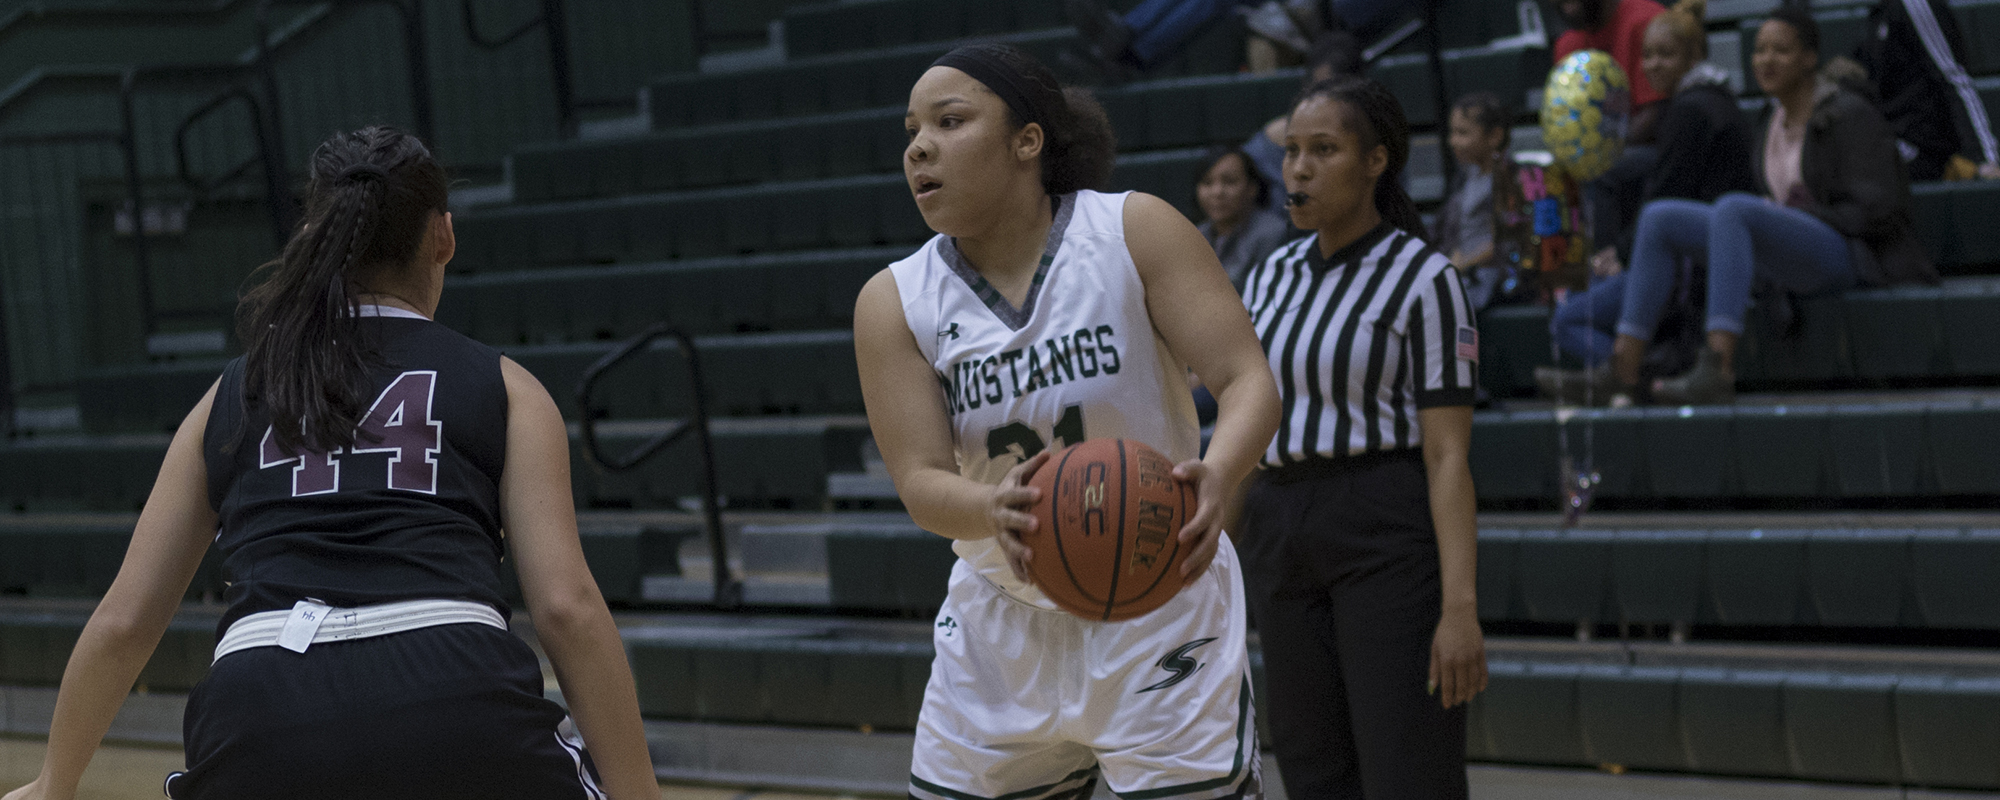 Mustangs Get Past Gophers For Fifth Straight